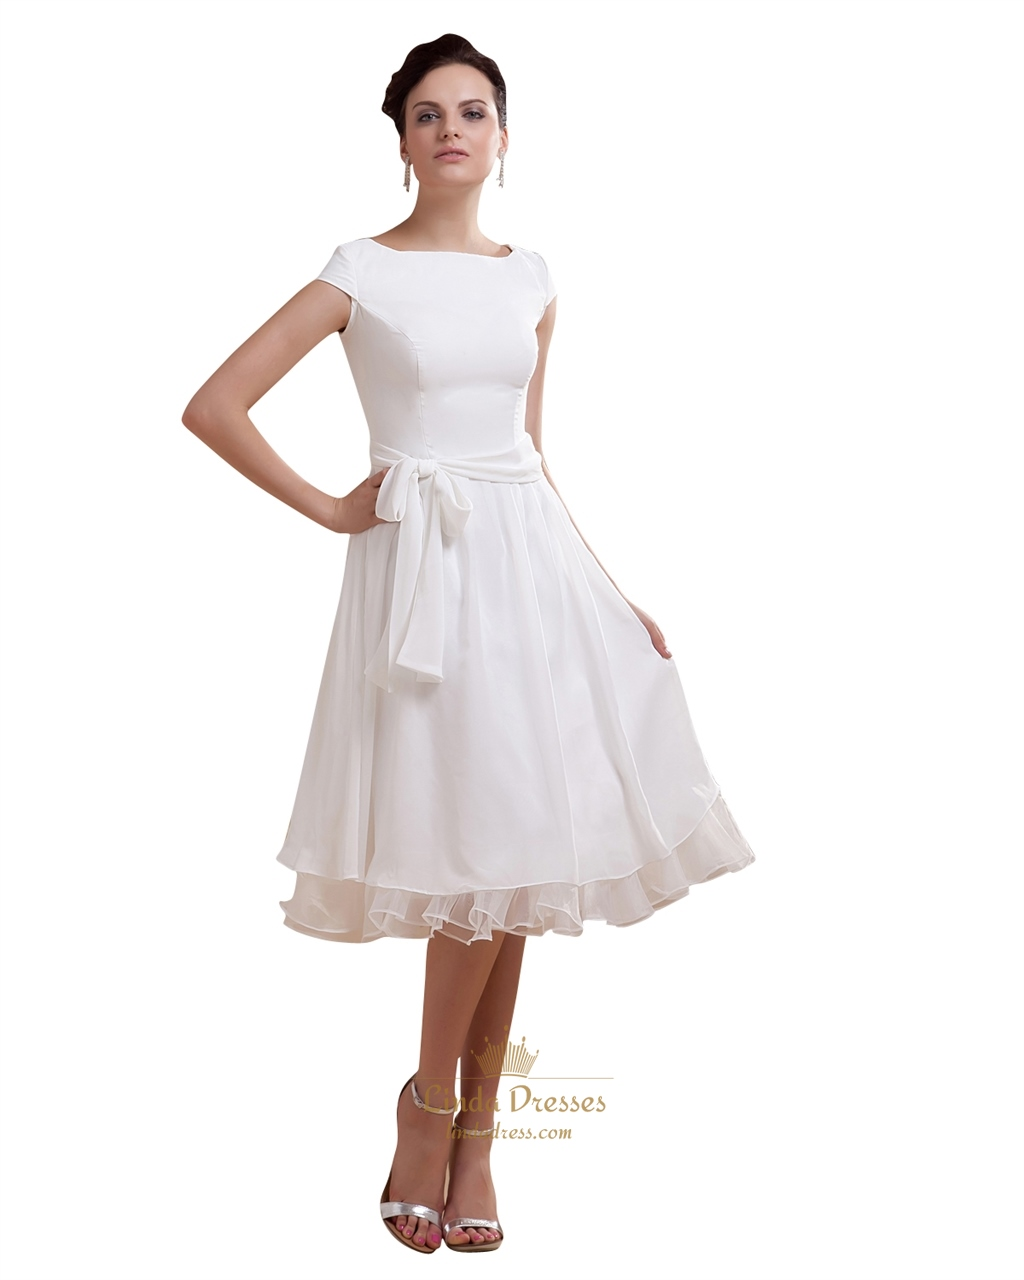 Simple Elegant Tea Length Chiffon Cap Sleeve Wedding Dresses With ...